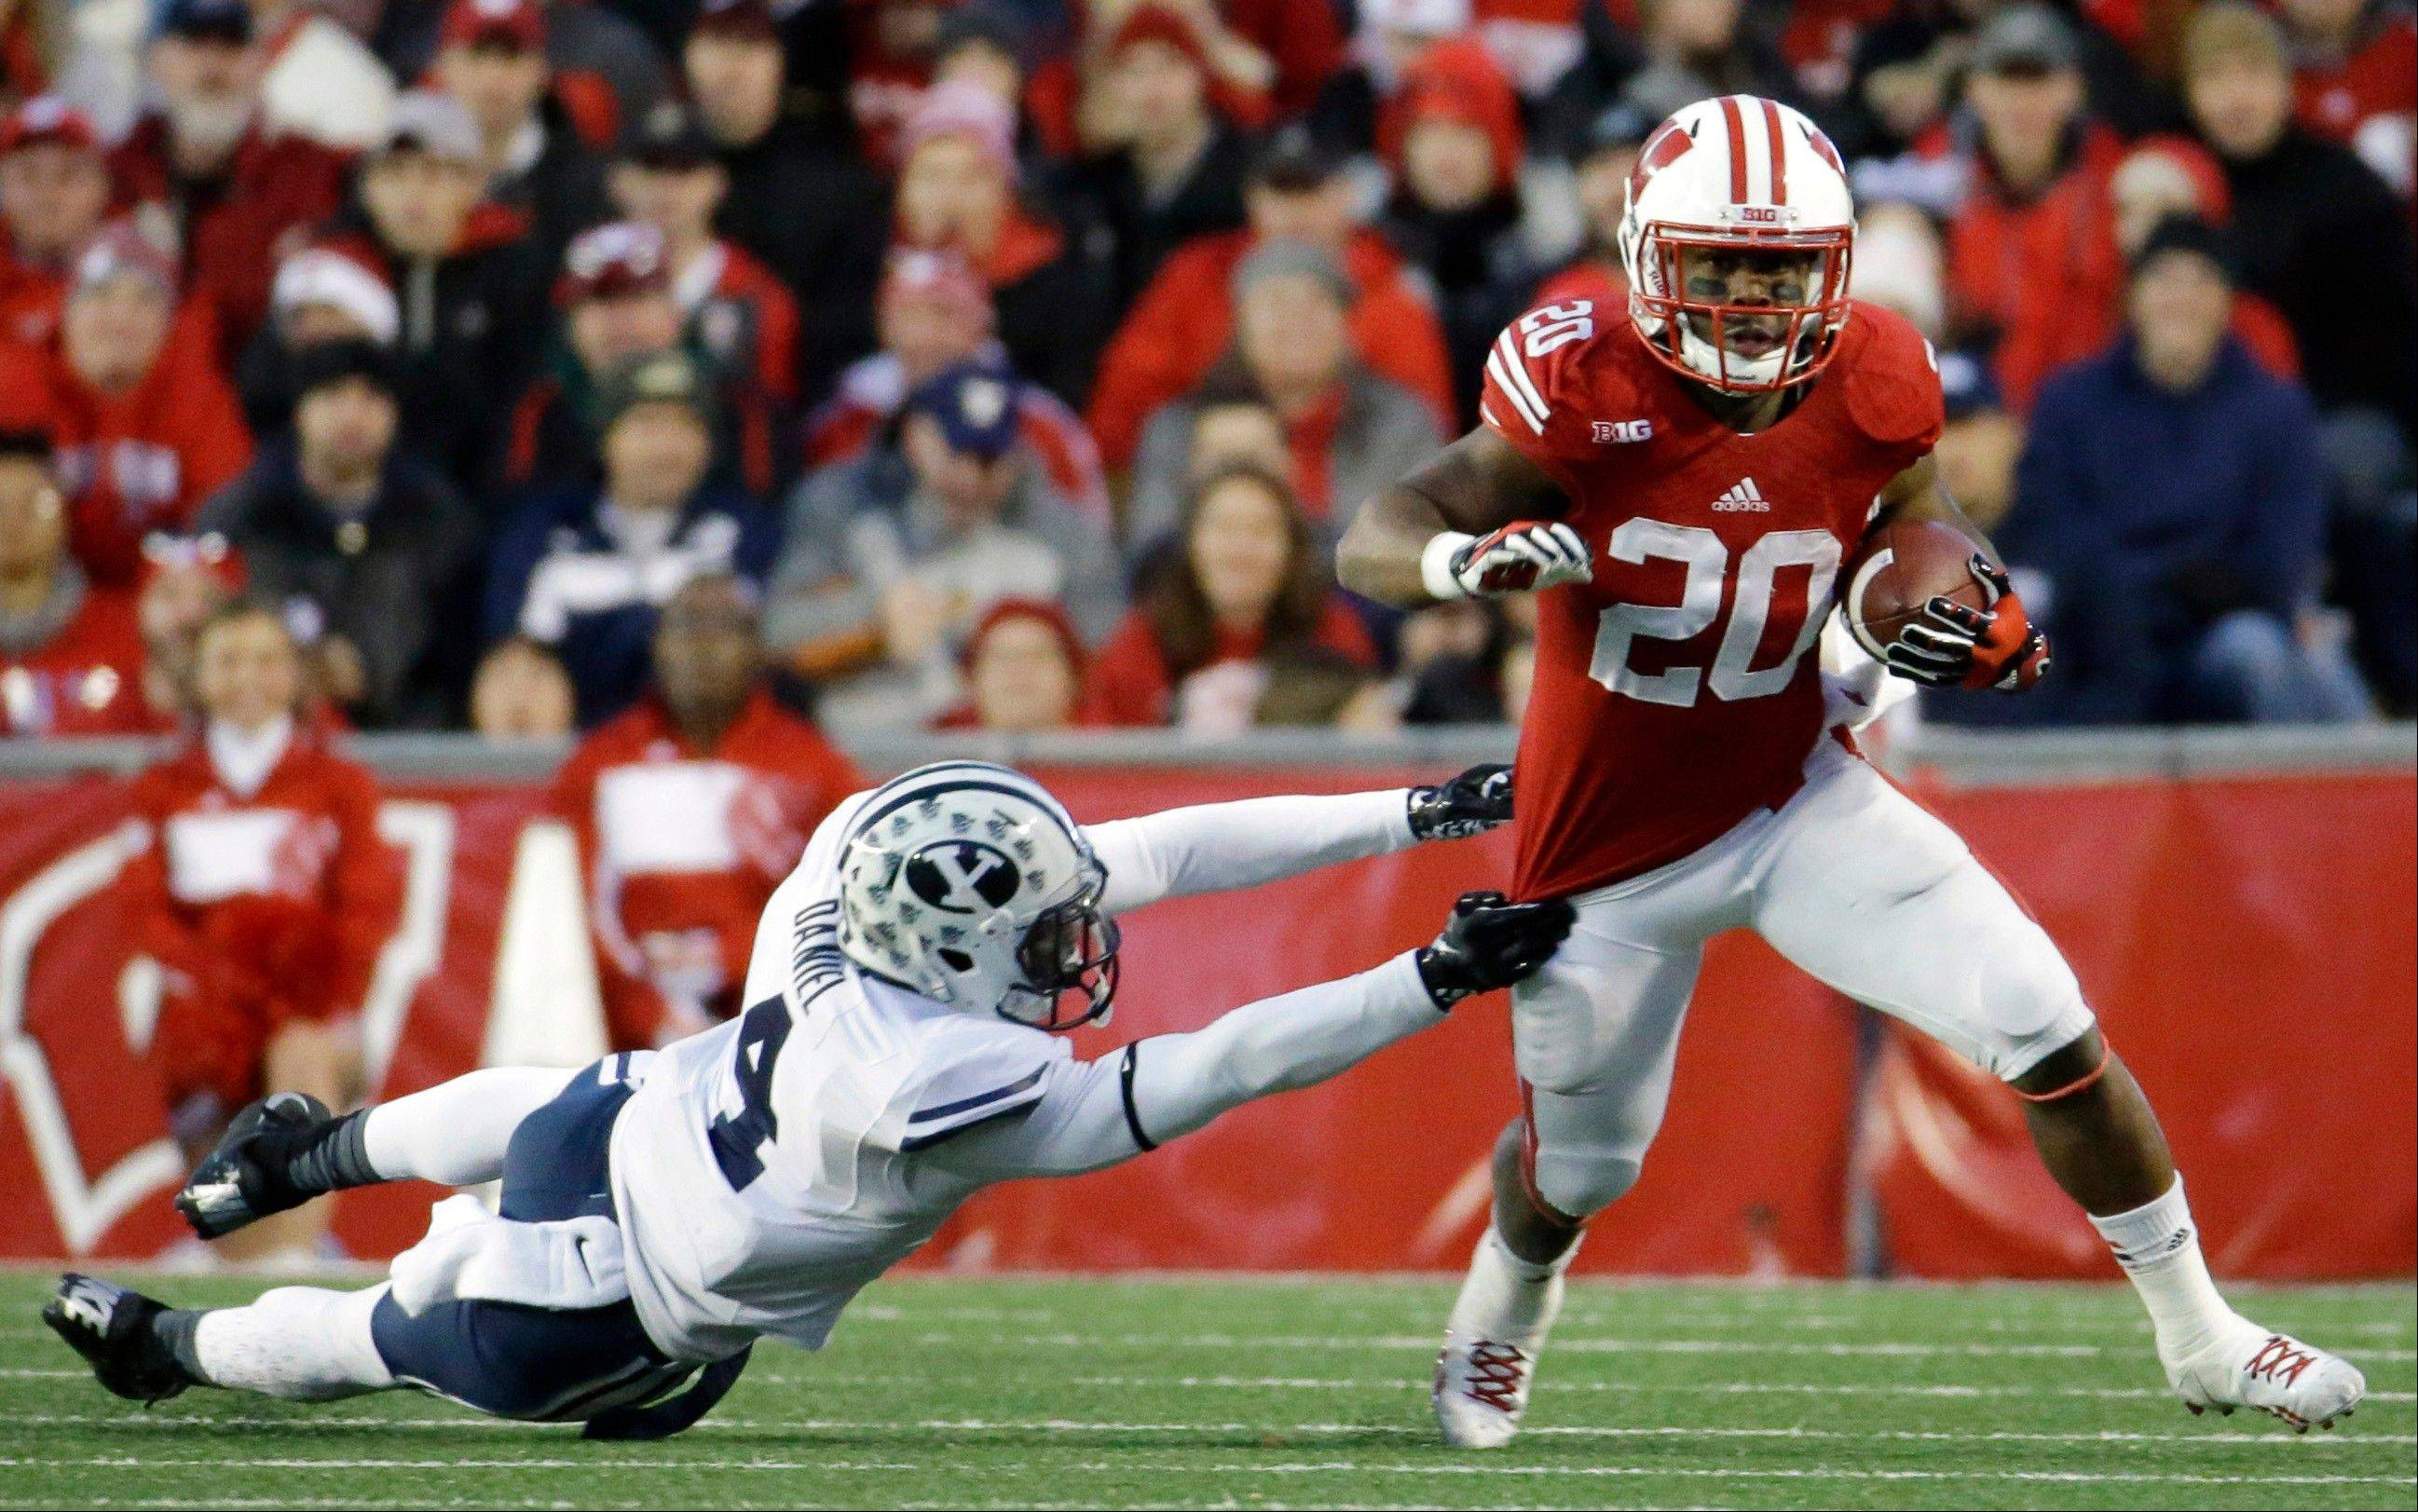 Wisconsin's James White, right, gets past Brigham Young's Robertson Daniel during the second half of Saturday's game in Madison. Wisconsin won 27-17.